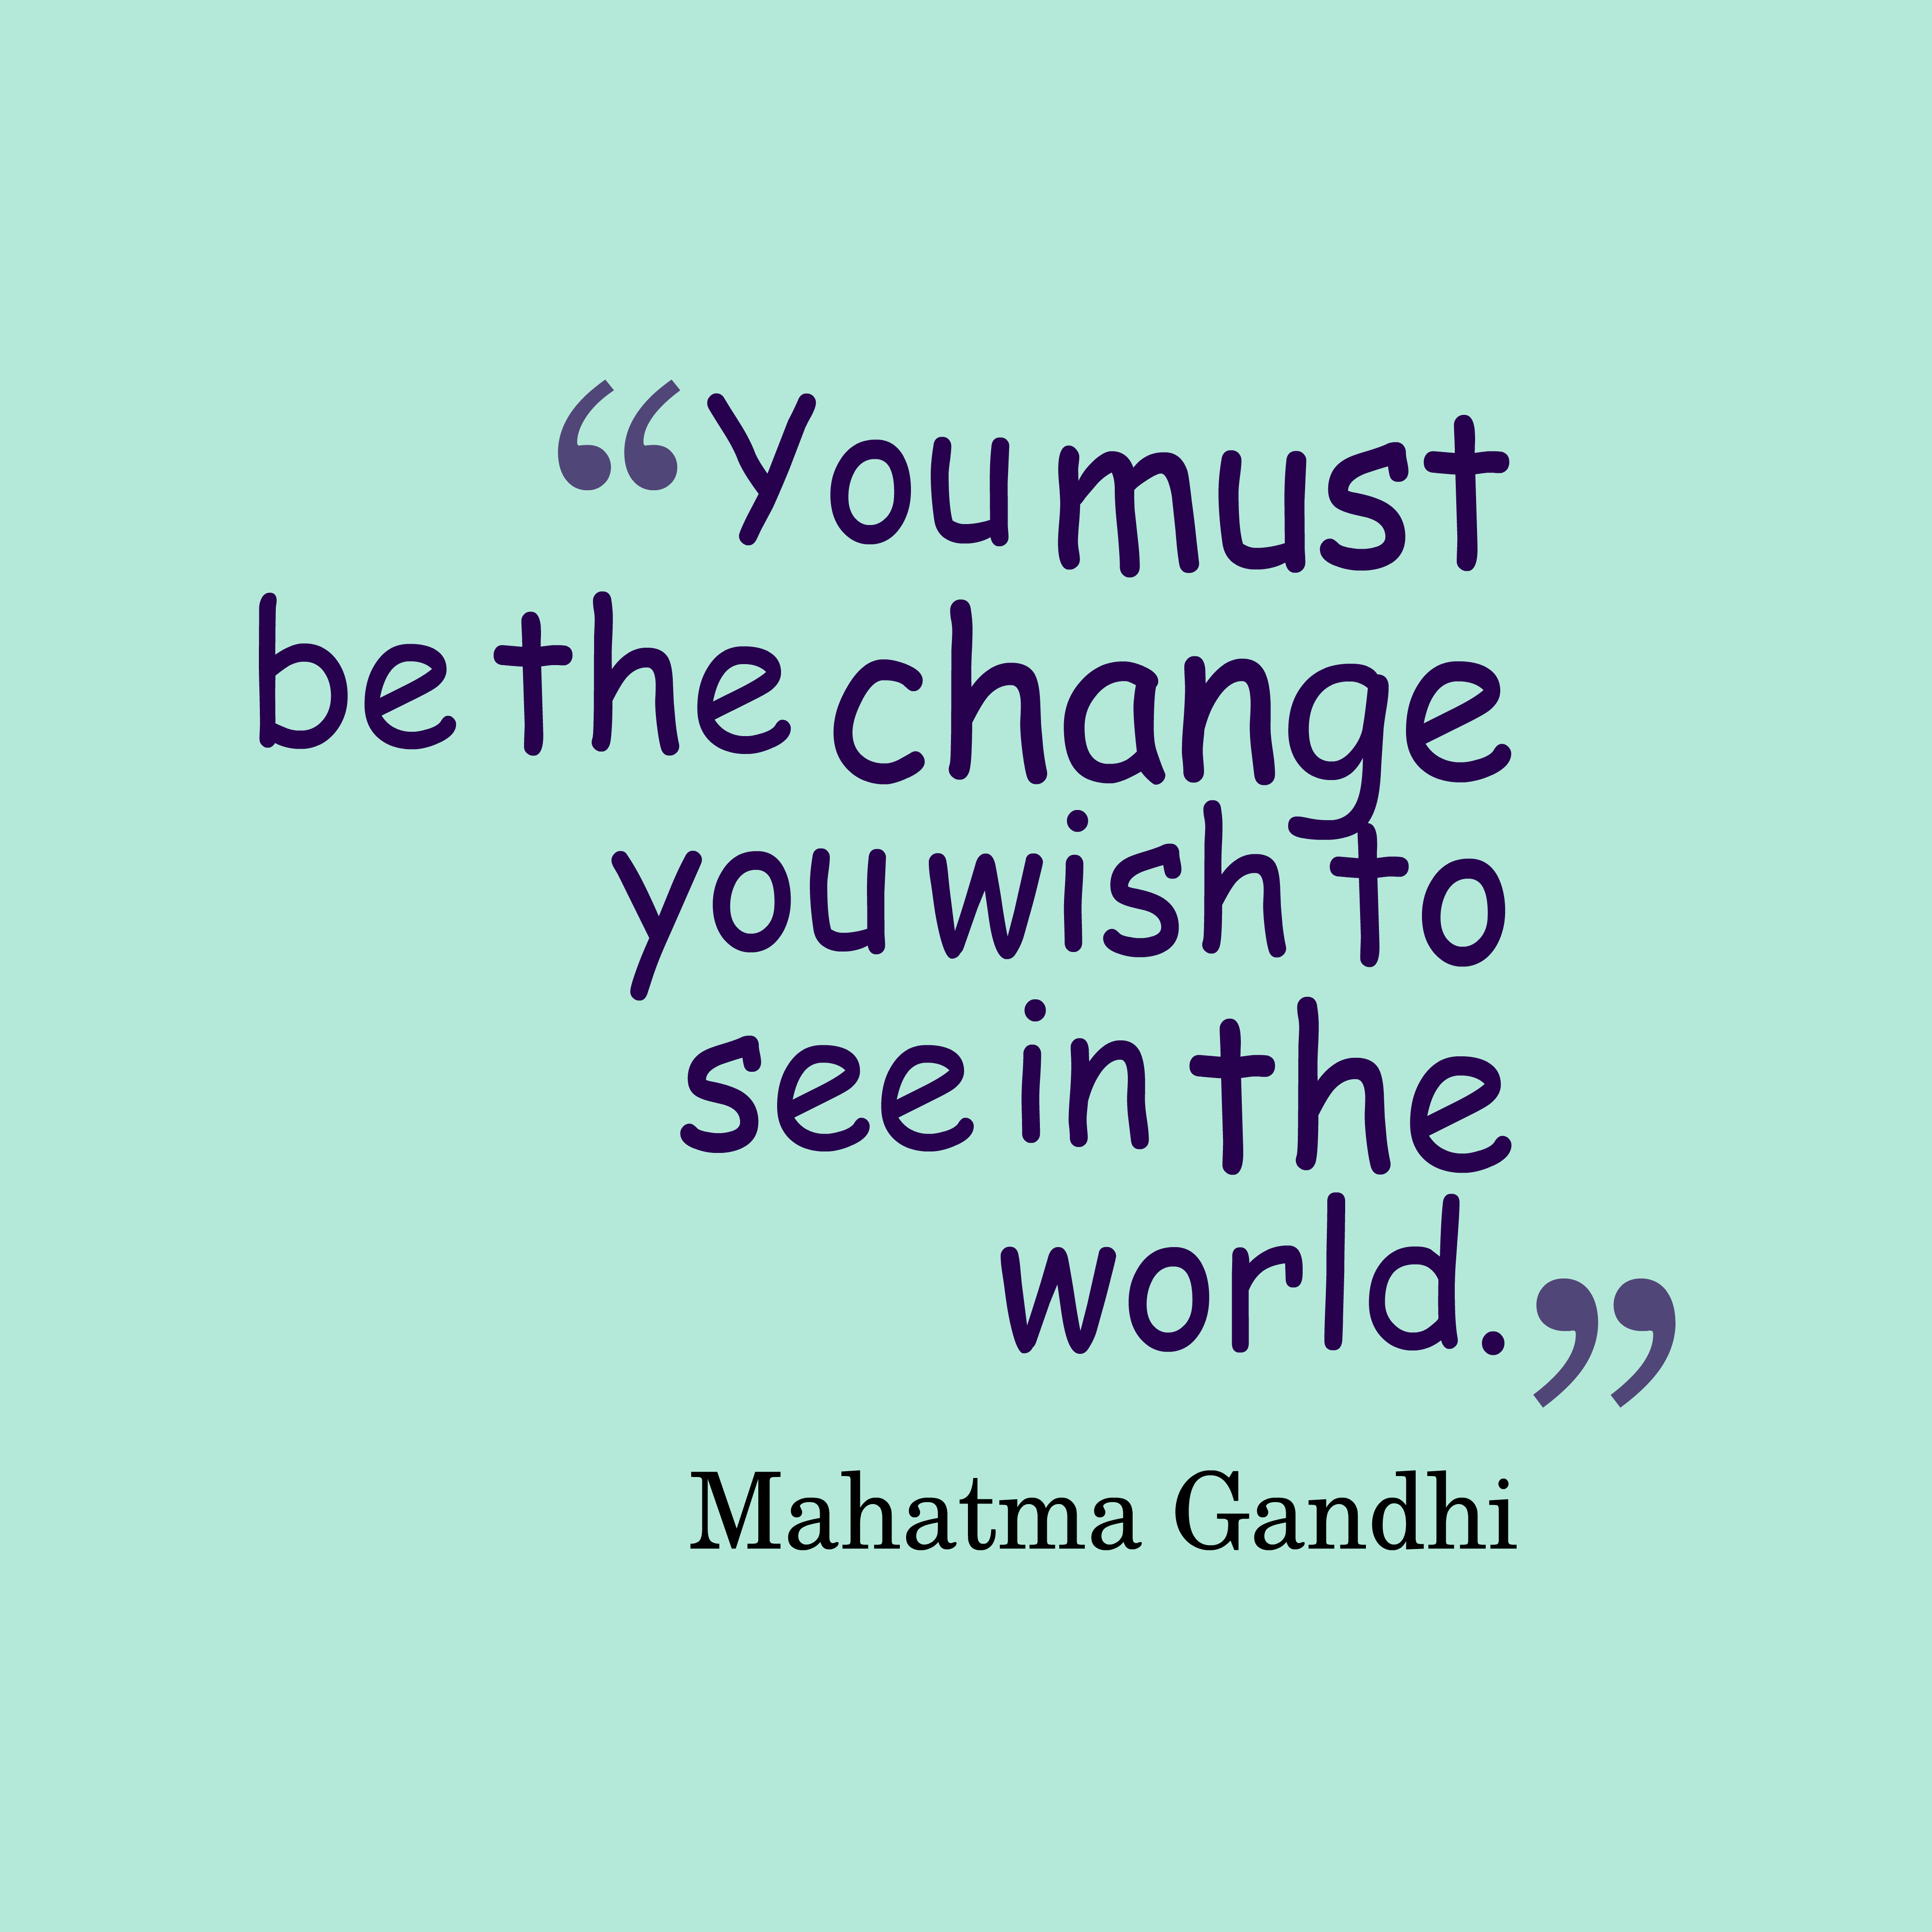 Get high resolution using text from Mahatma Gandhi quote about change. - Quot...